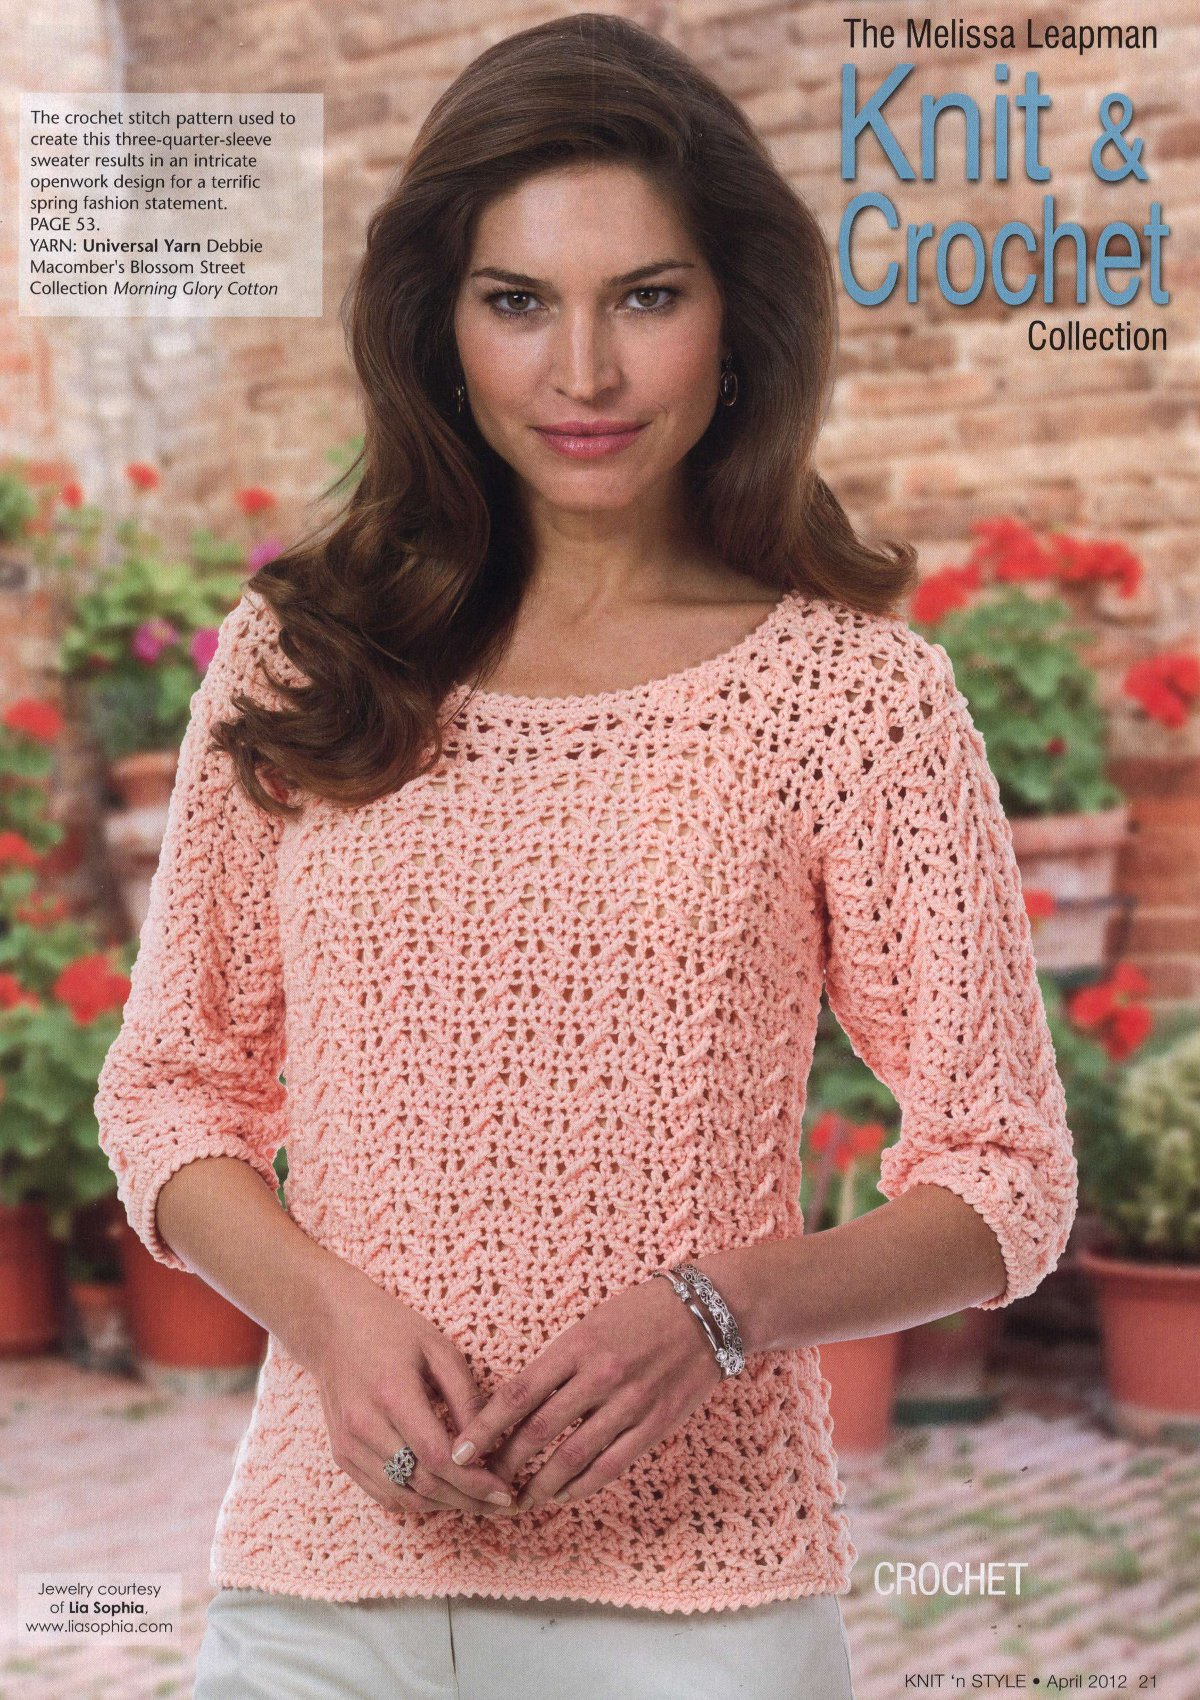 Free Crochet Patterns For Women s Shell Tops : ??????? ???????? Crochet Textured Top - ????.??